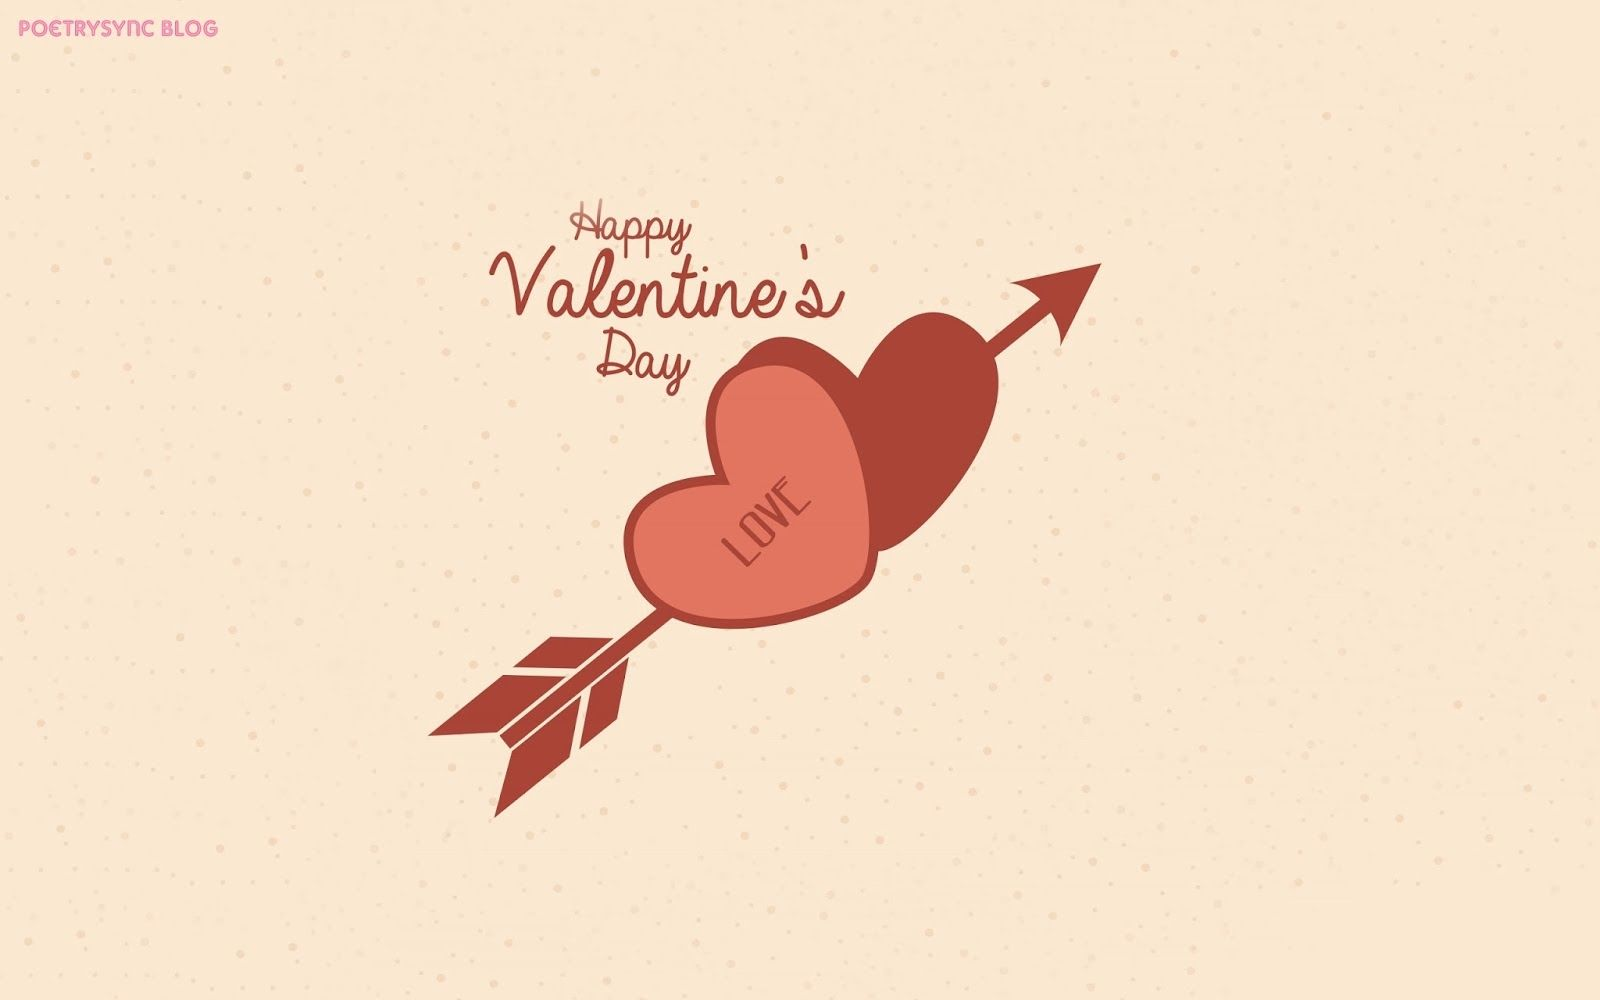 Happy Valentines Day Love Pictures Photos And Images For Facebook